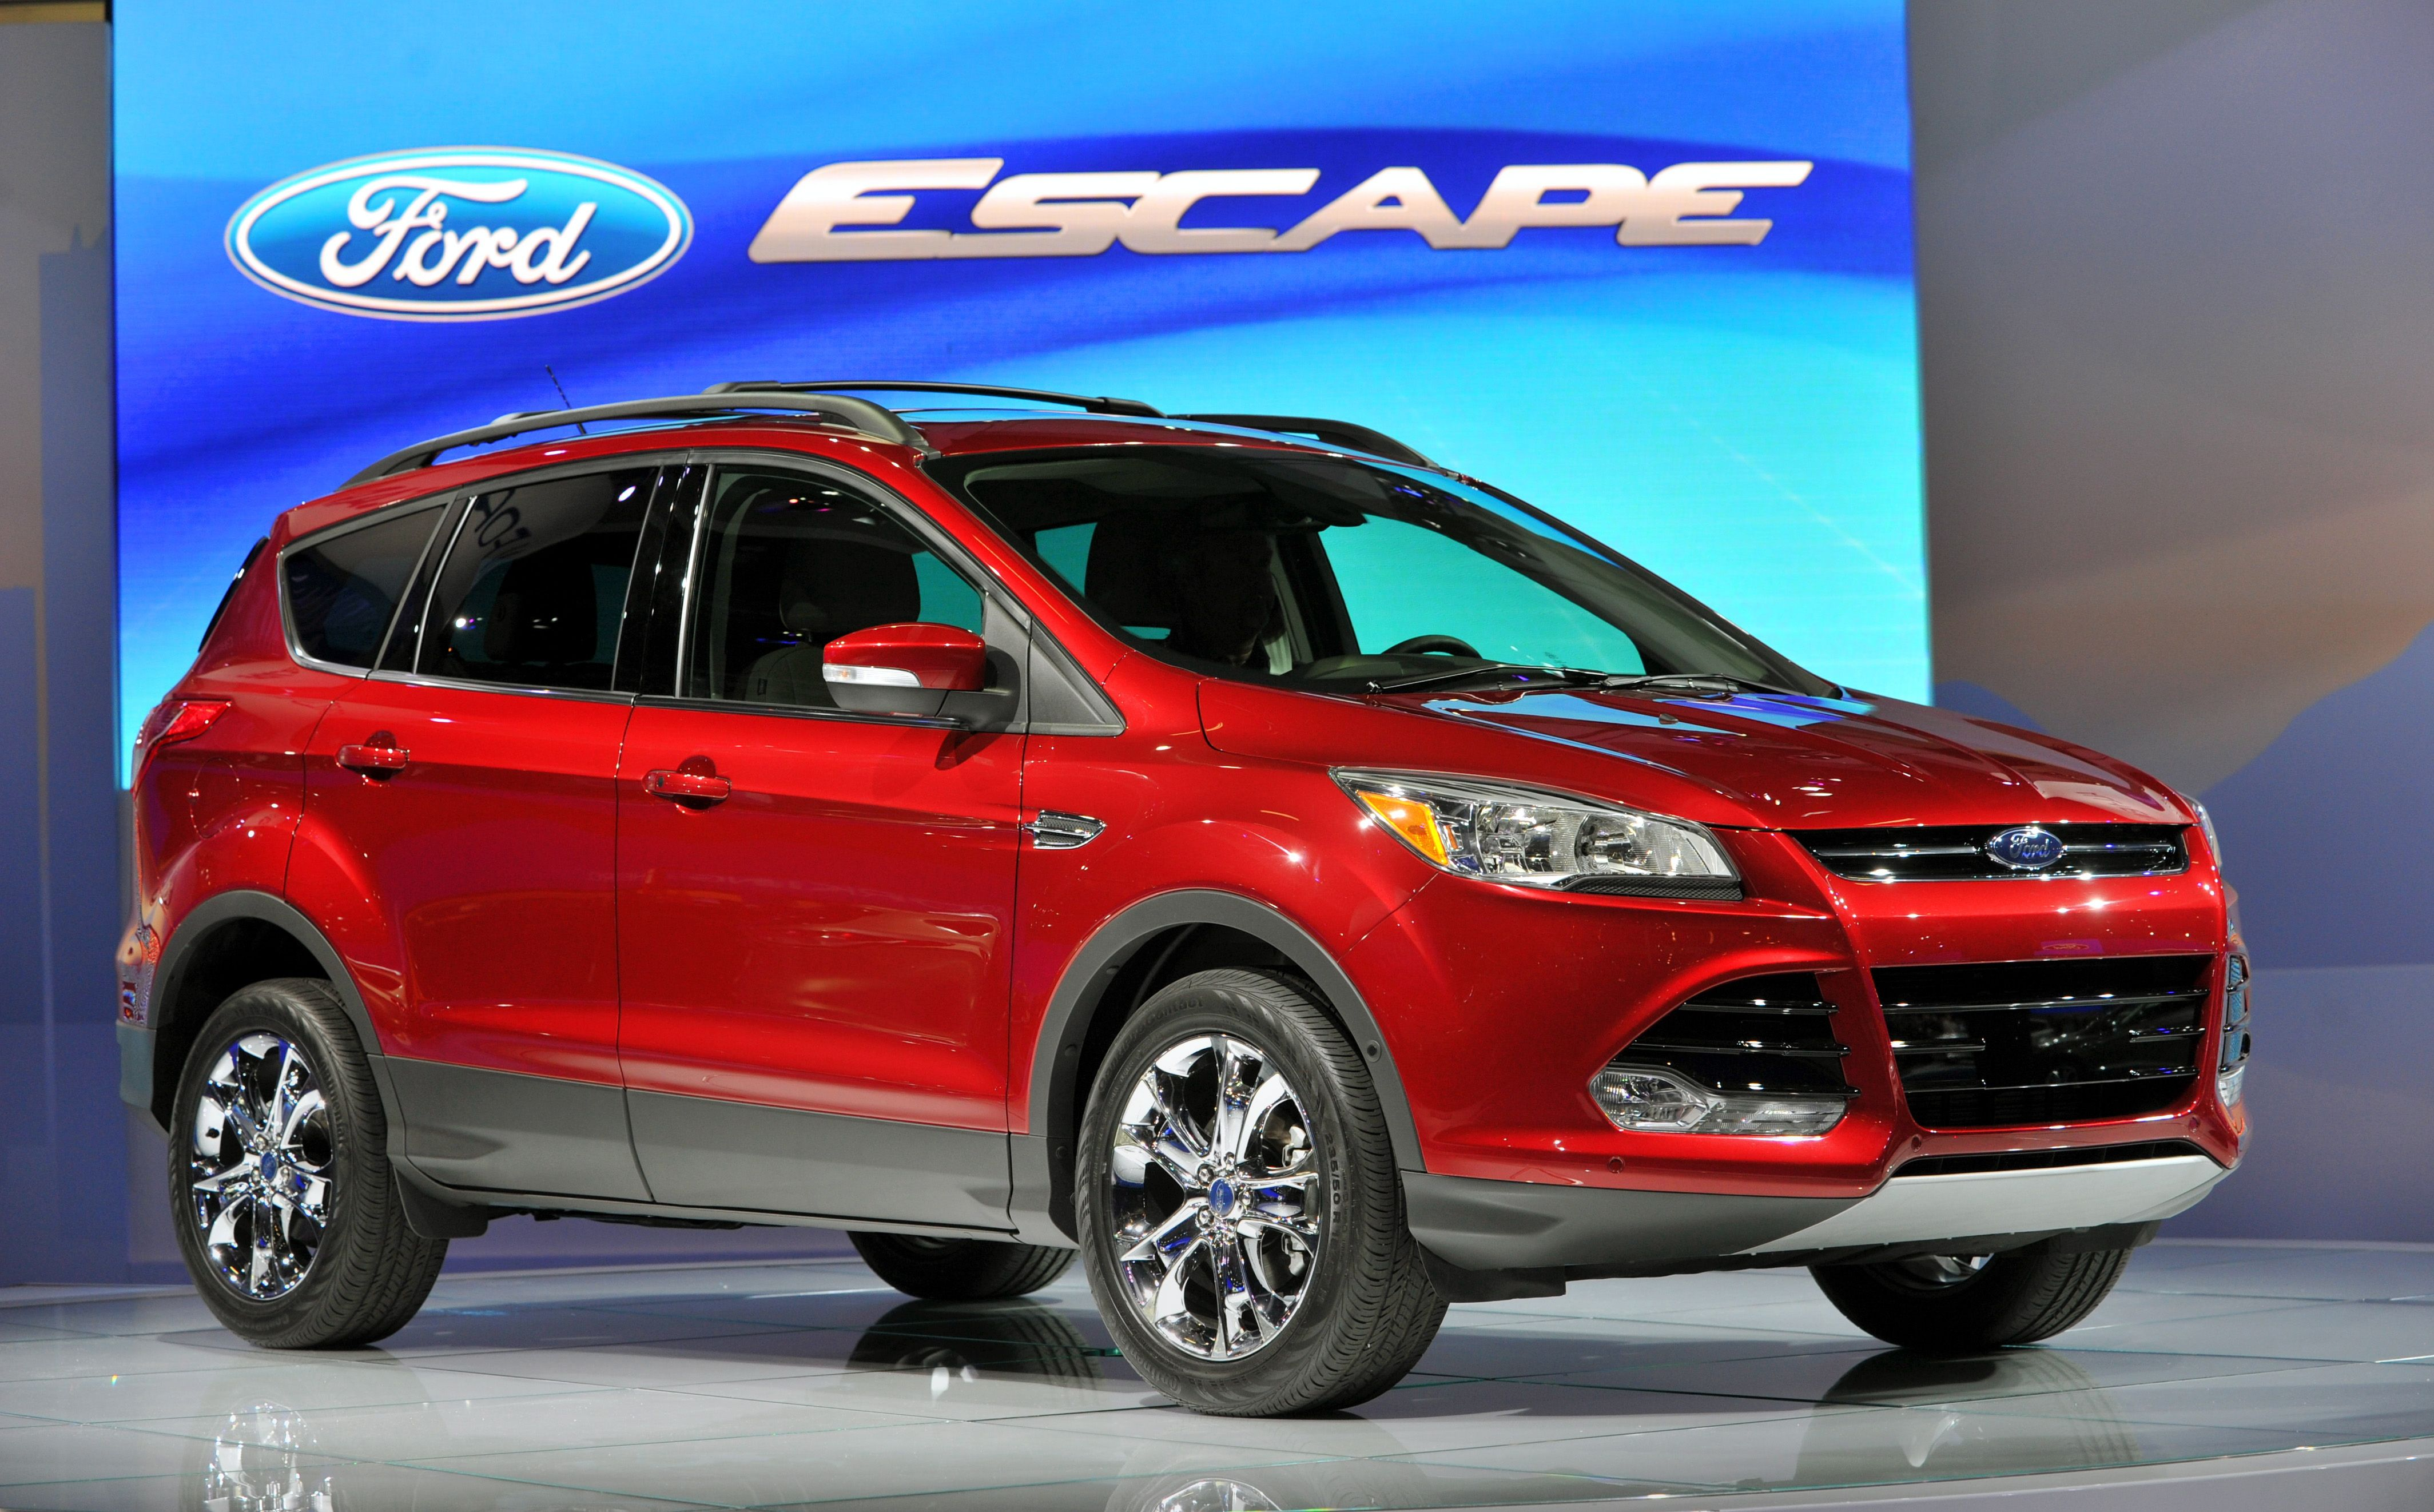 2013 Ford Escape to Get 5 Better MPG Than Previous Model